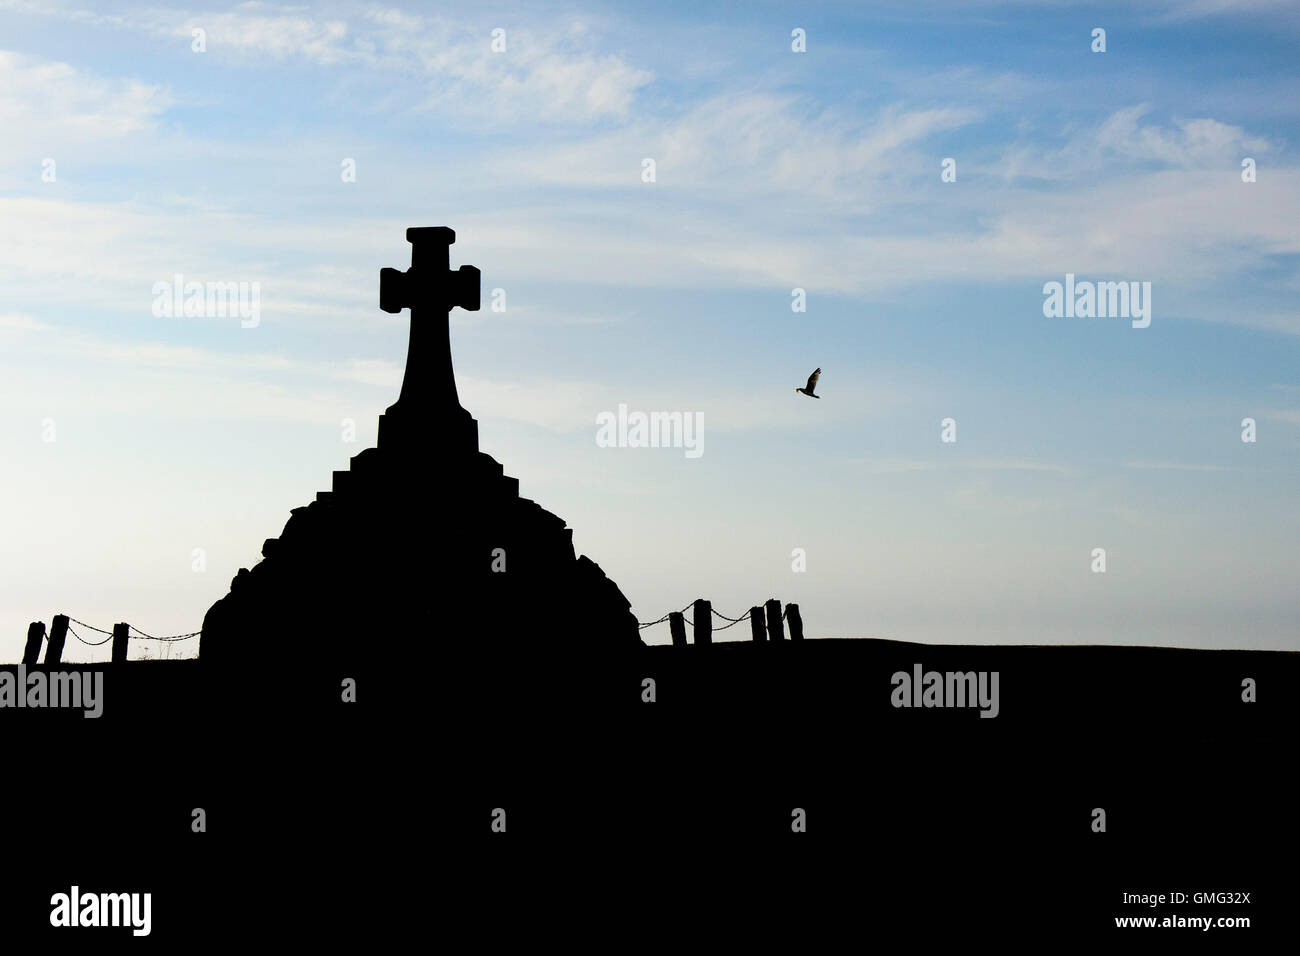 The Newquay War memorial seen in silhouette. - Stock Image